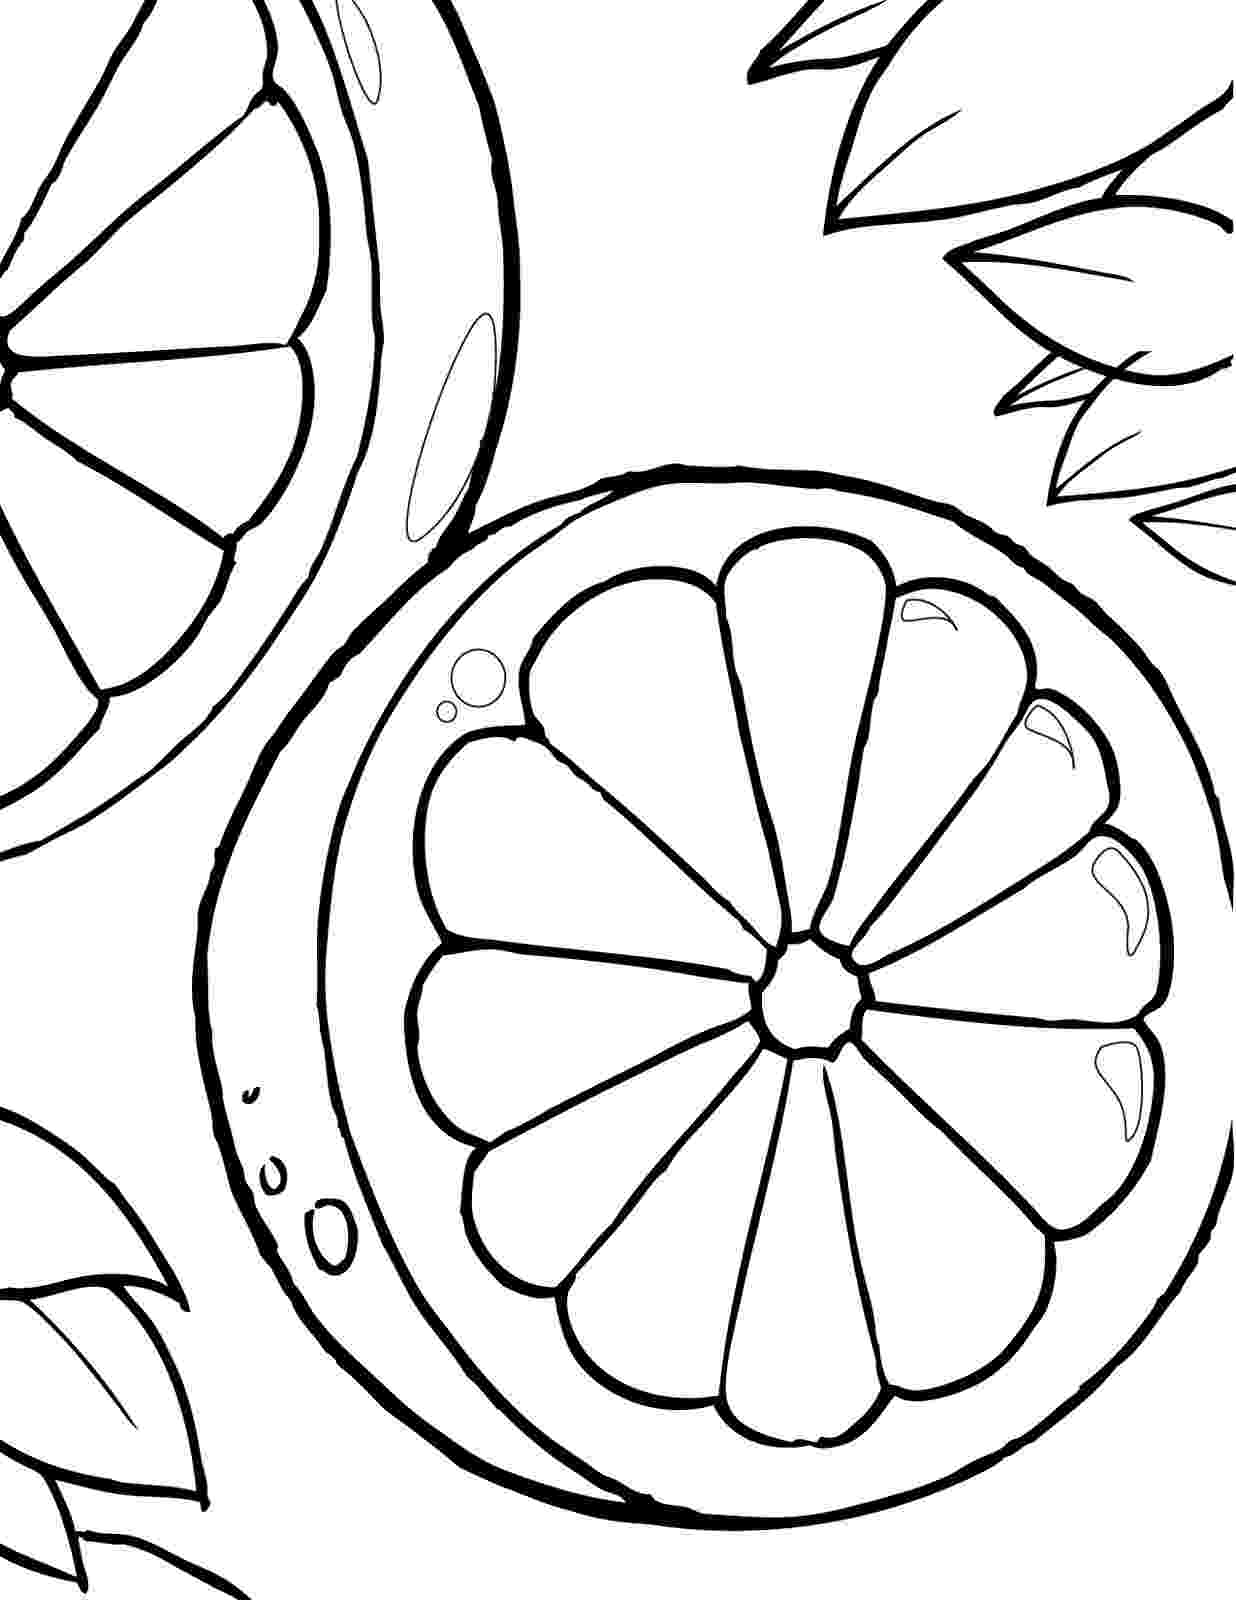 coloring page of a orange orange coloring pages hellokidscom of a page orange coloring